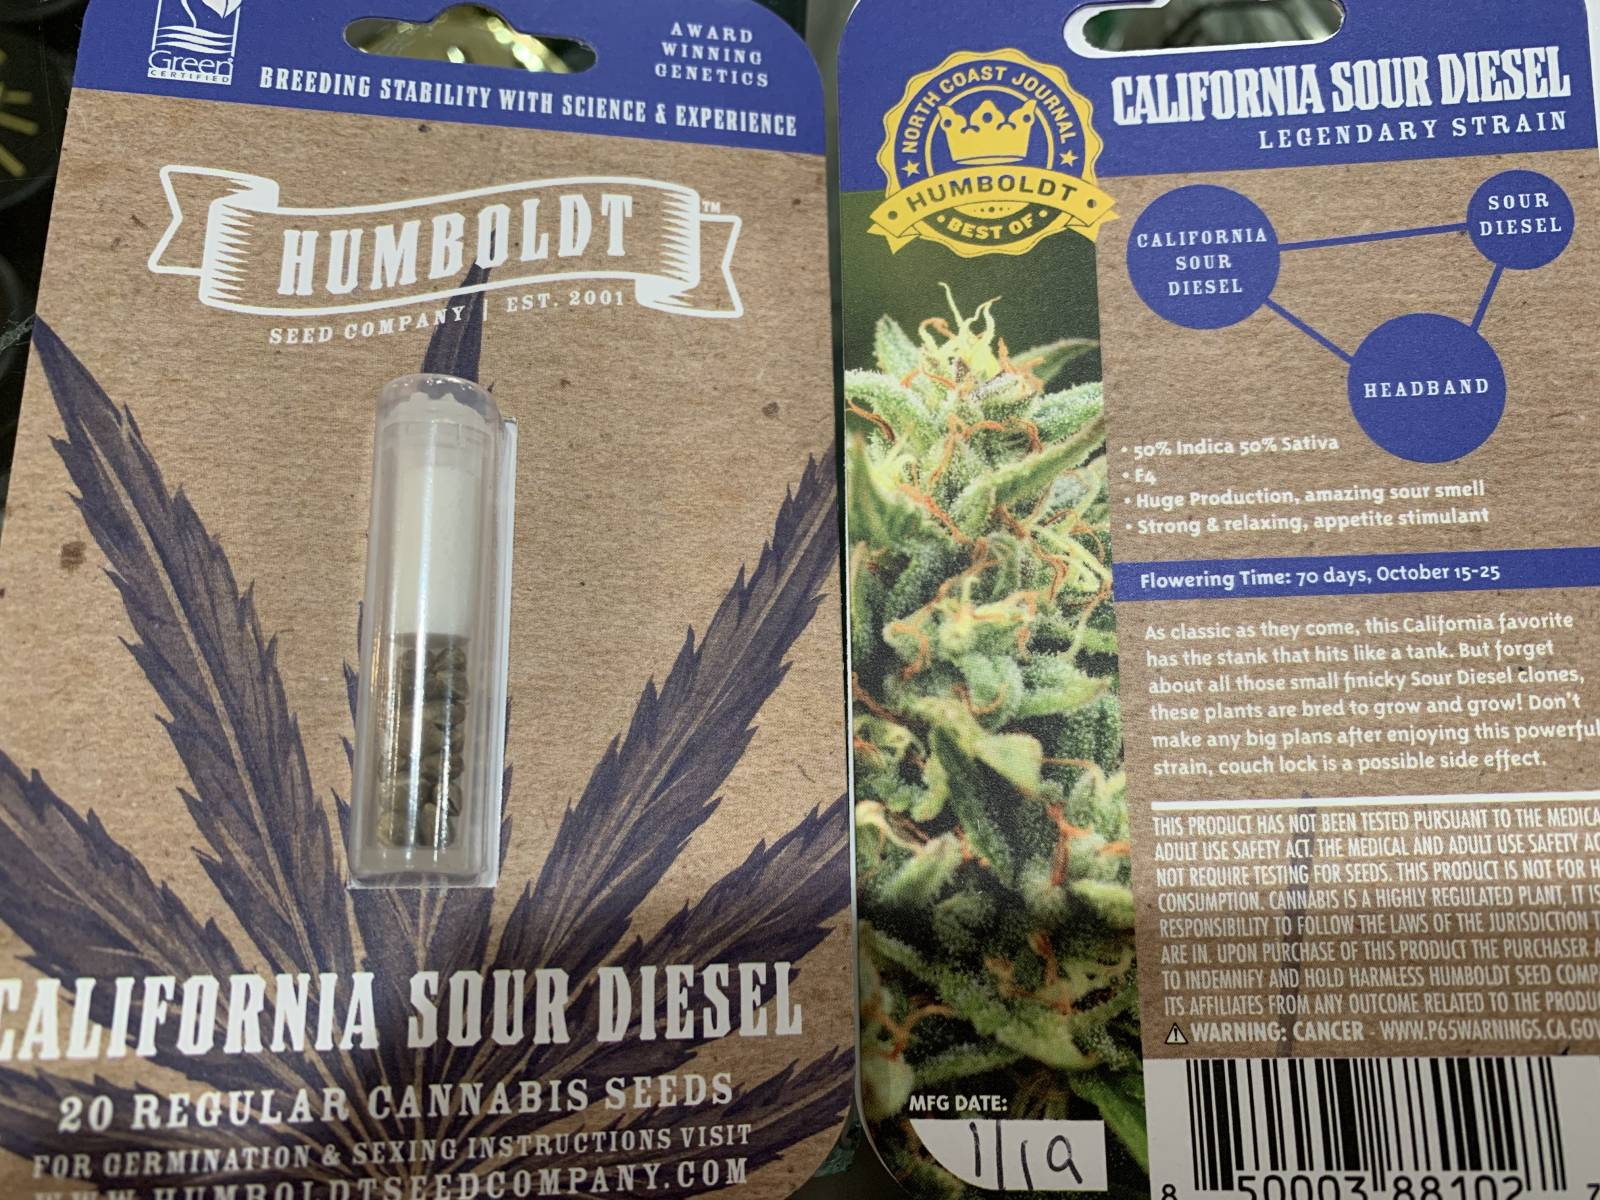 Humboldt seed co California sour diesel seeds